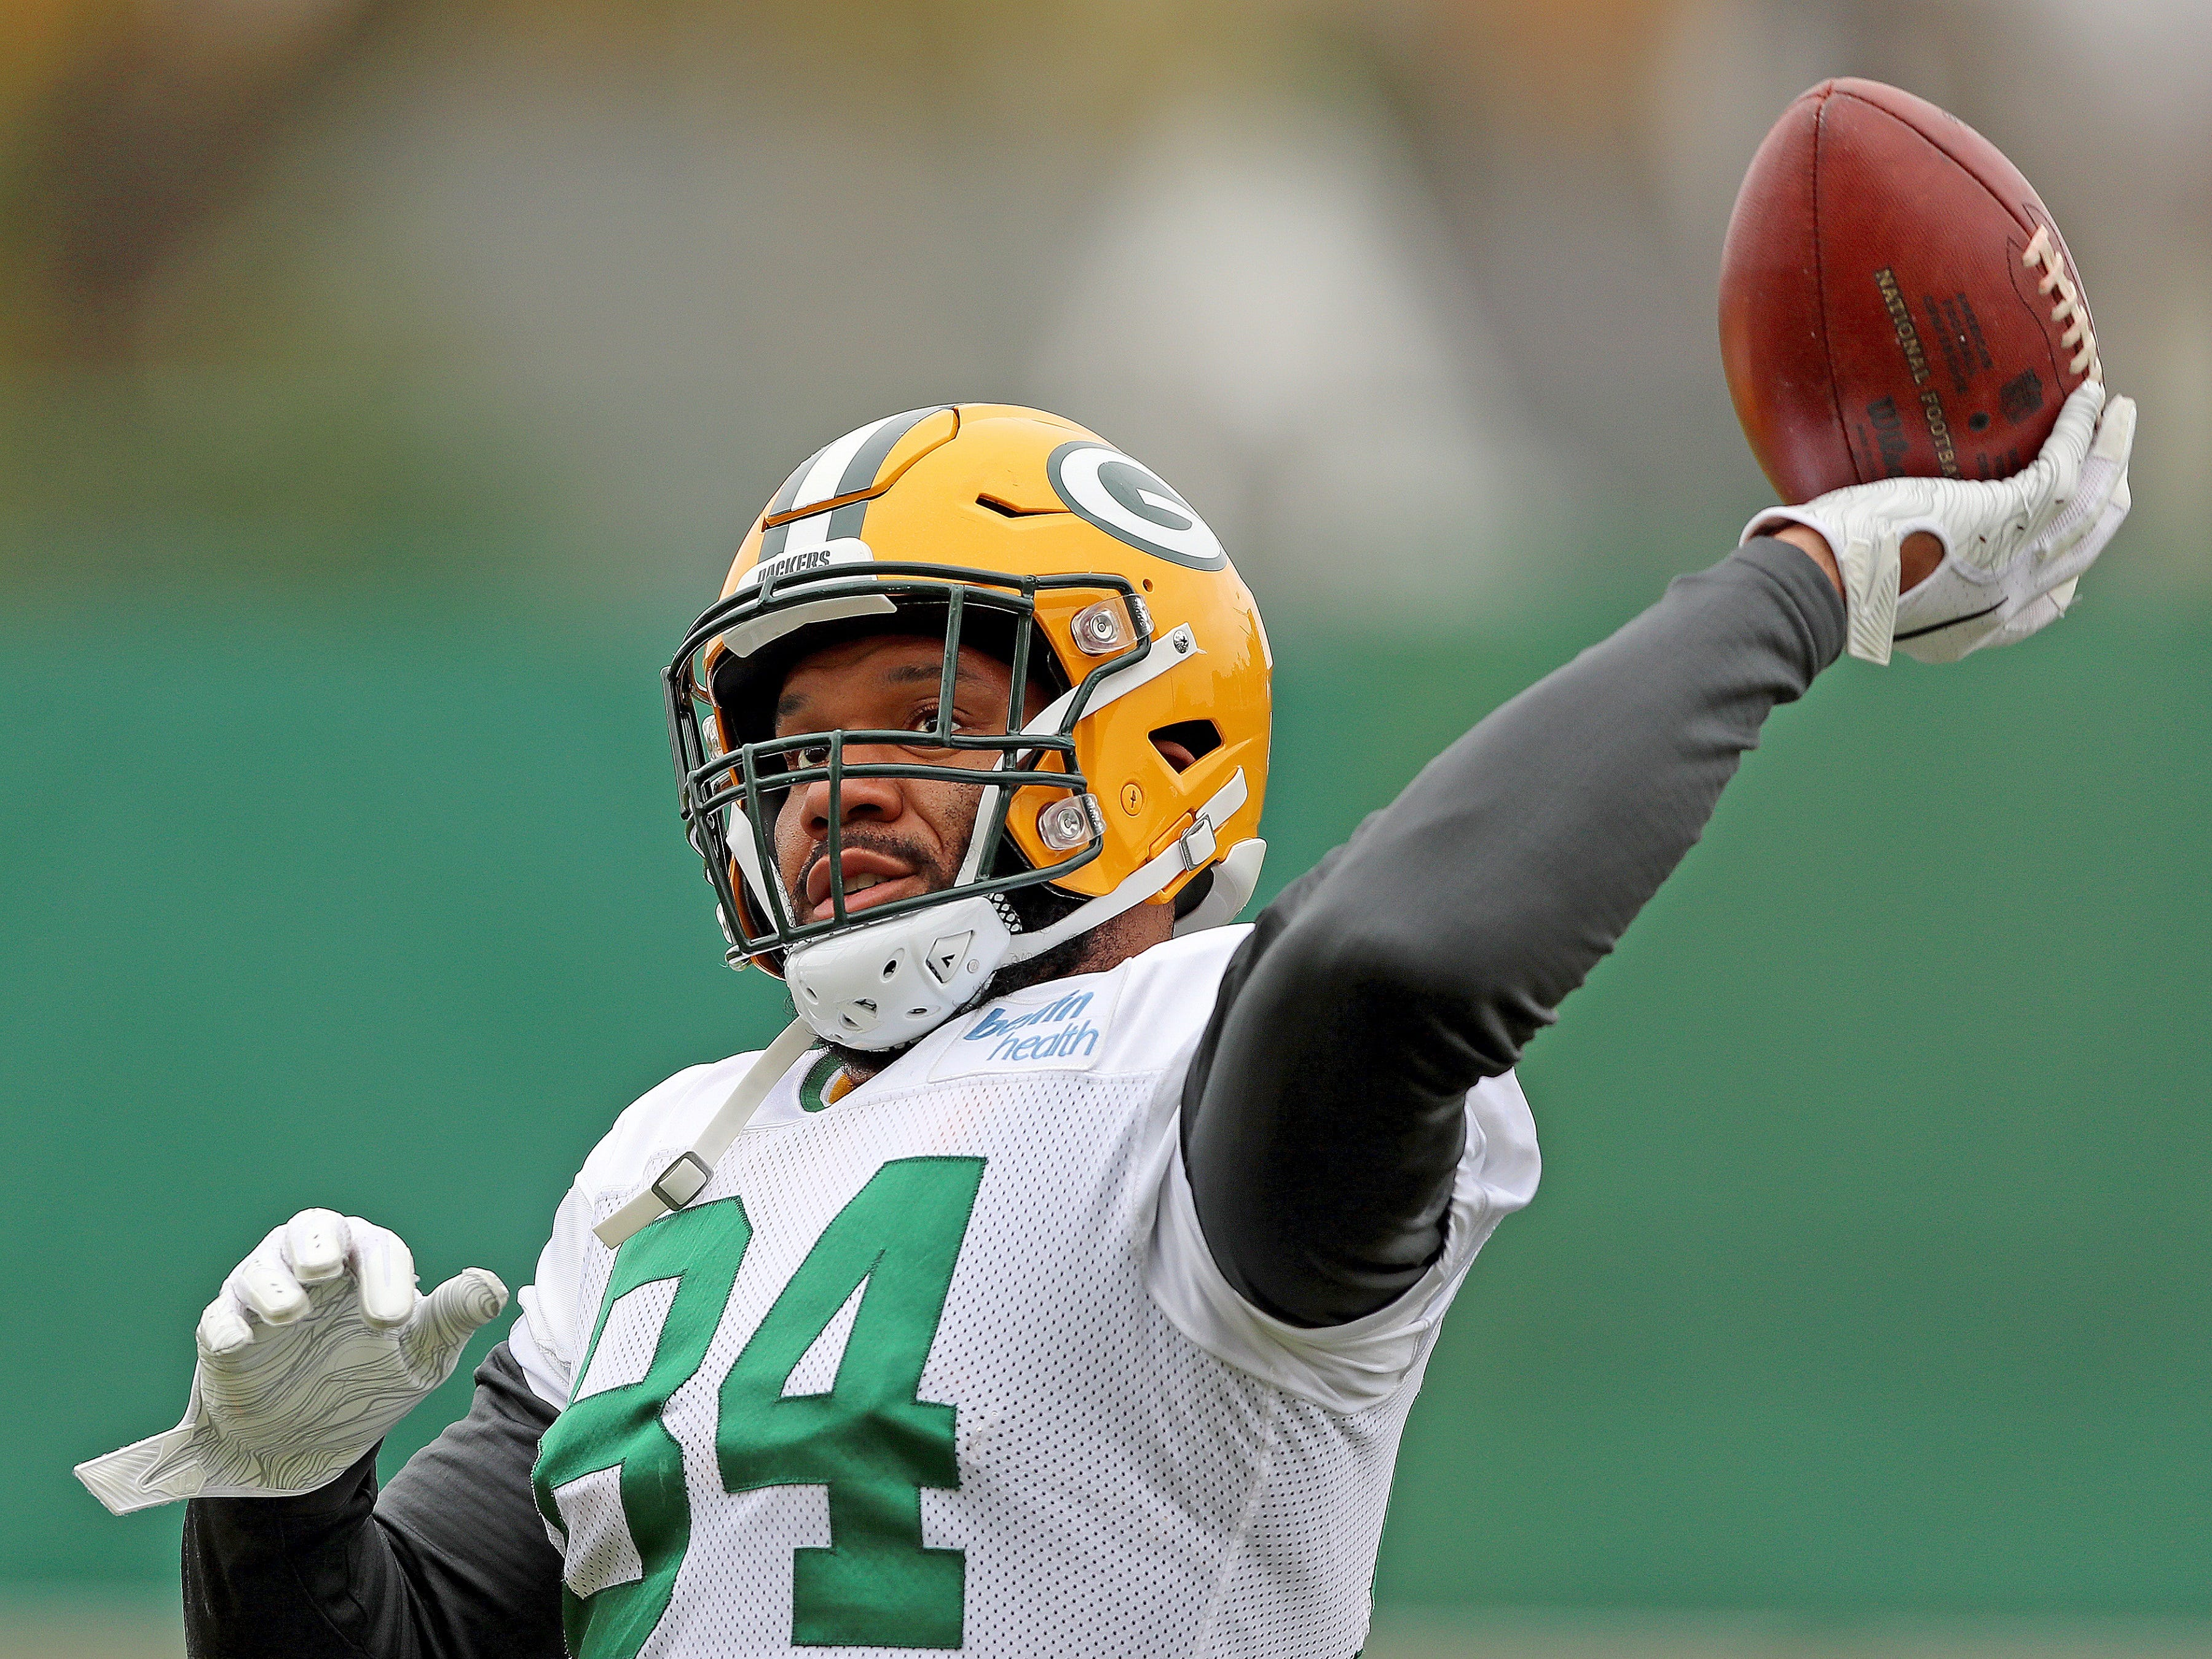 Green Bay Packers tight end Lance Kendricks (84) during practice Thursday, November 8, 2018 at the Don Hutson Center in Ashwaubenon, Wis.